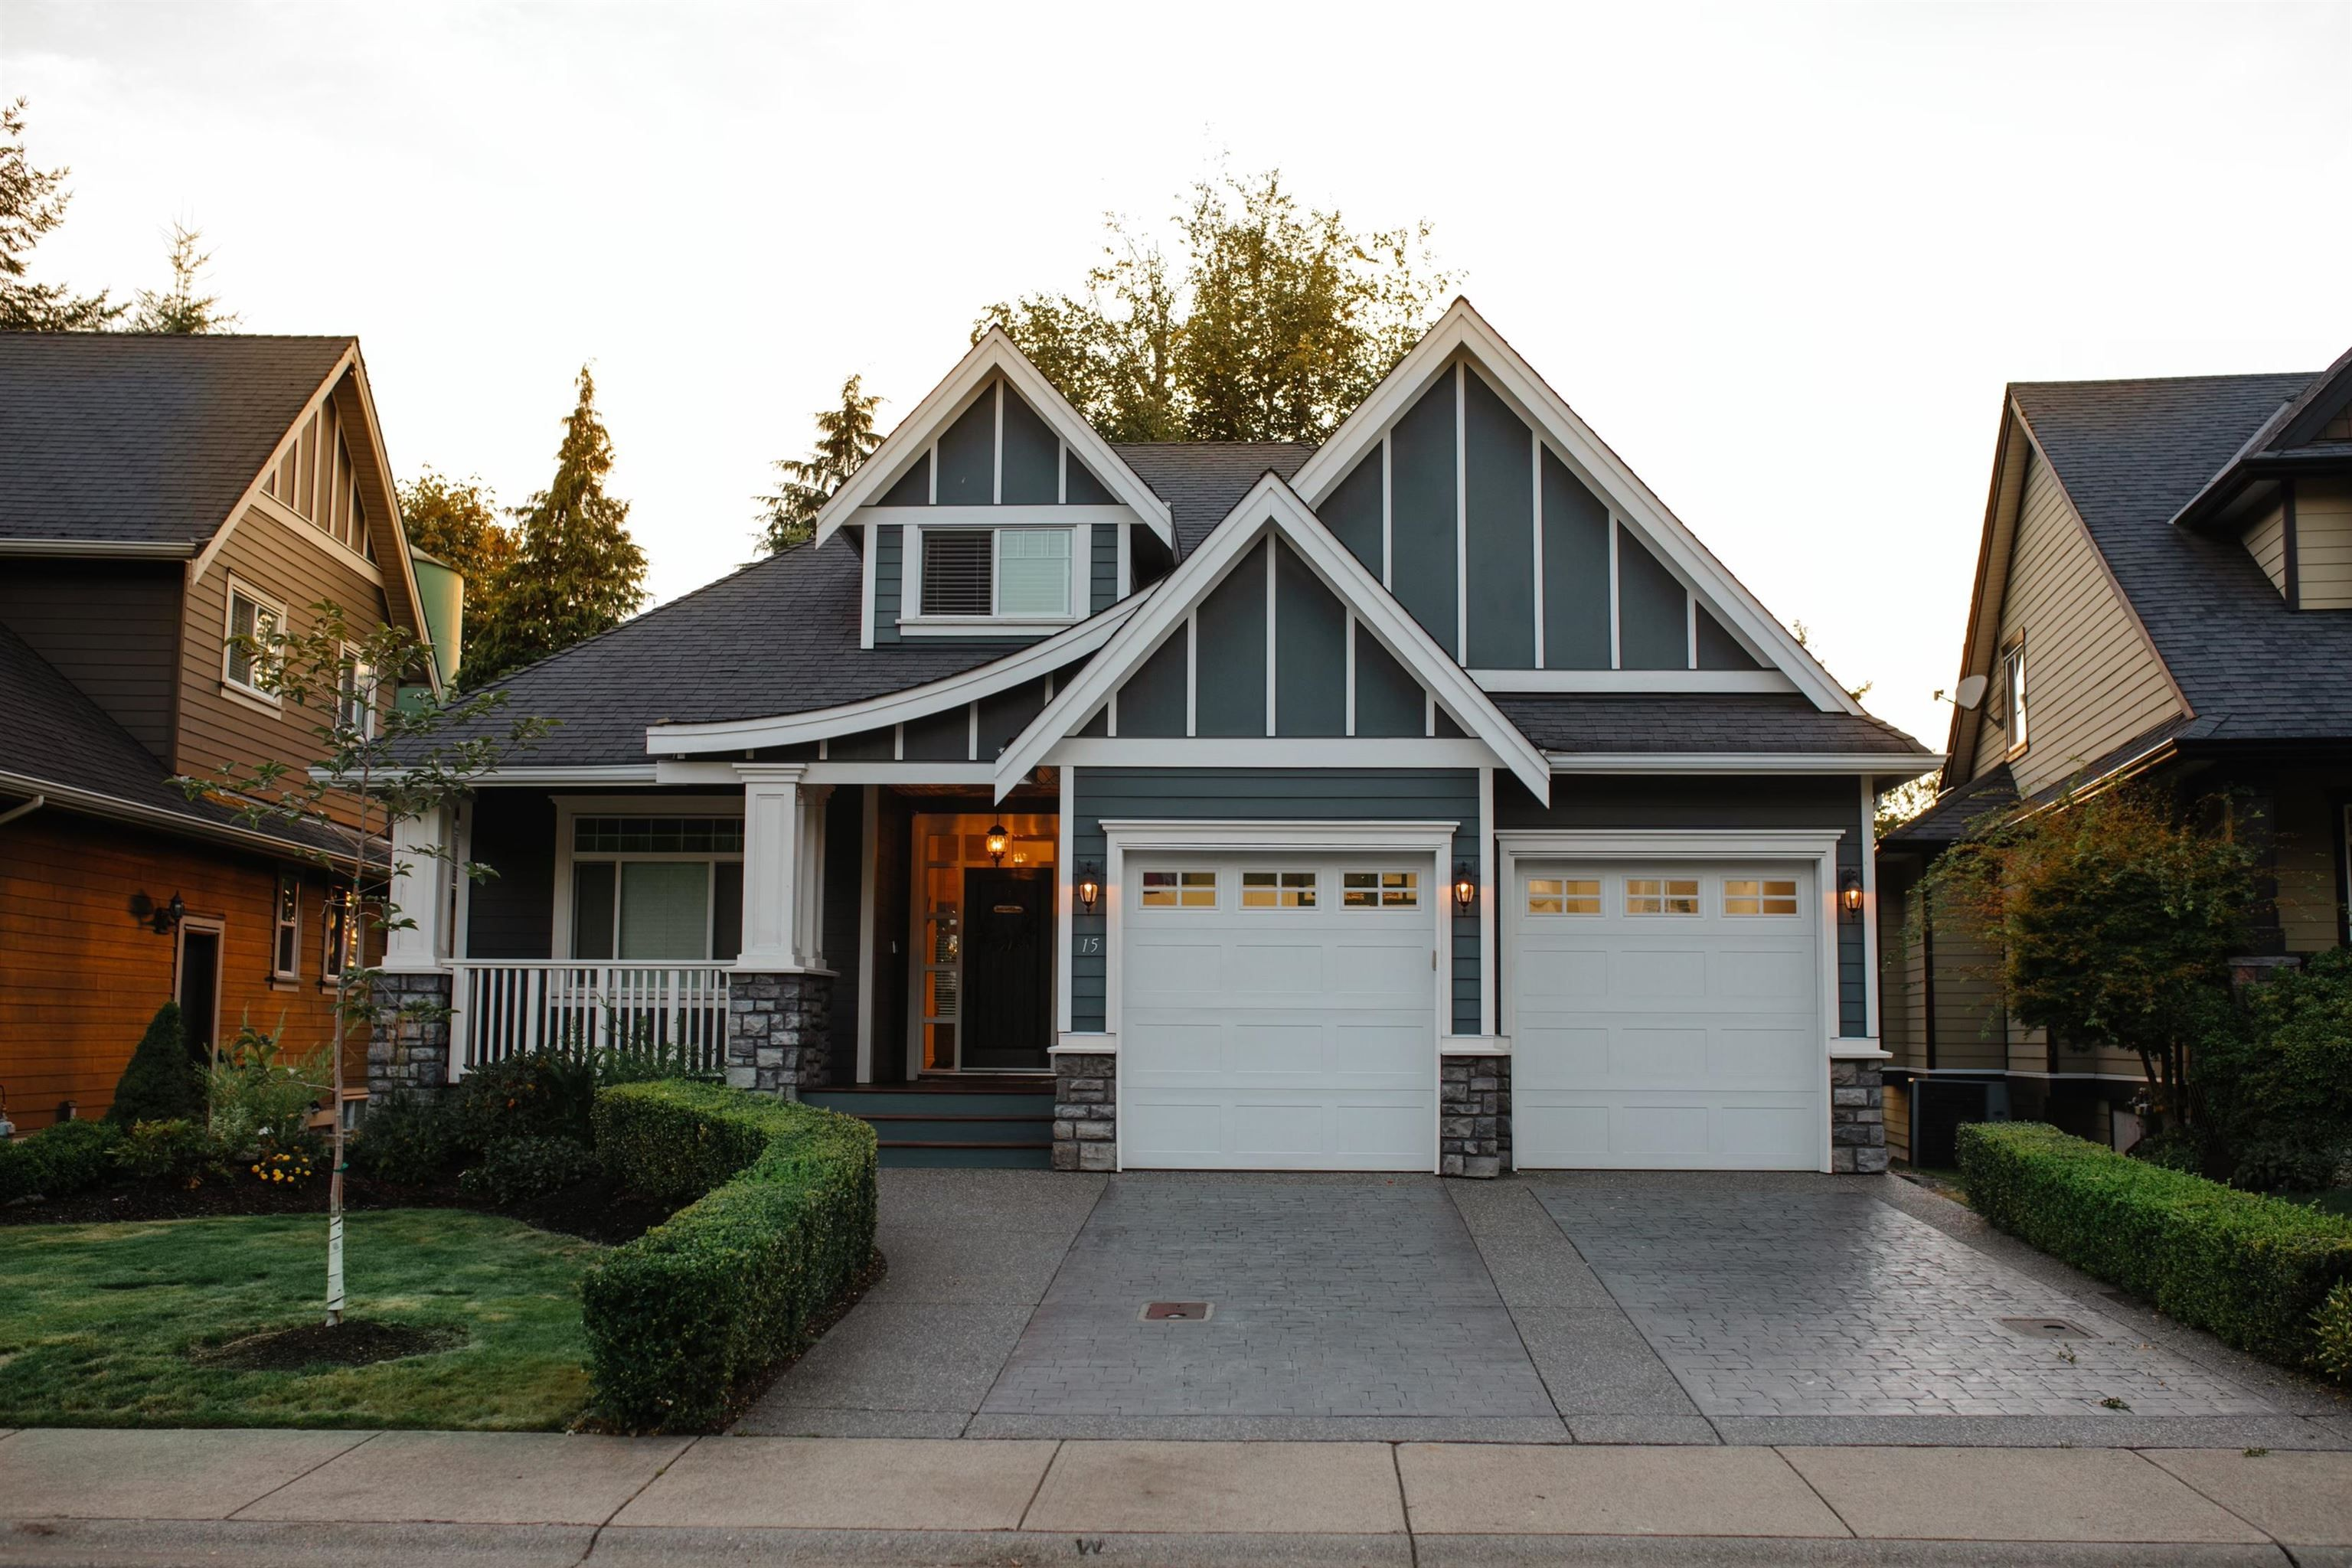 """Main Photo: 15 3800 GOLF COURSE Drive in Abbotsford: Abbotsford East House for sale in """"Ledgeview Estates"""" : MLS®# R2613568"""